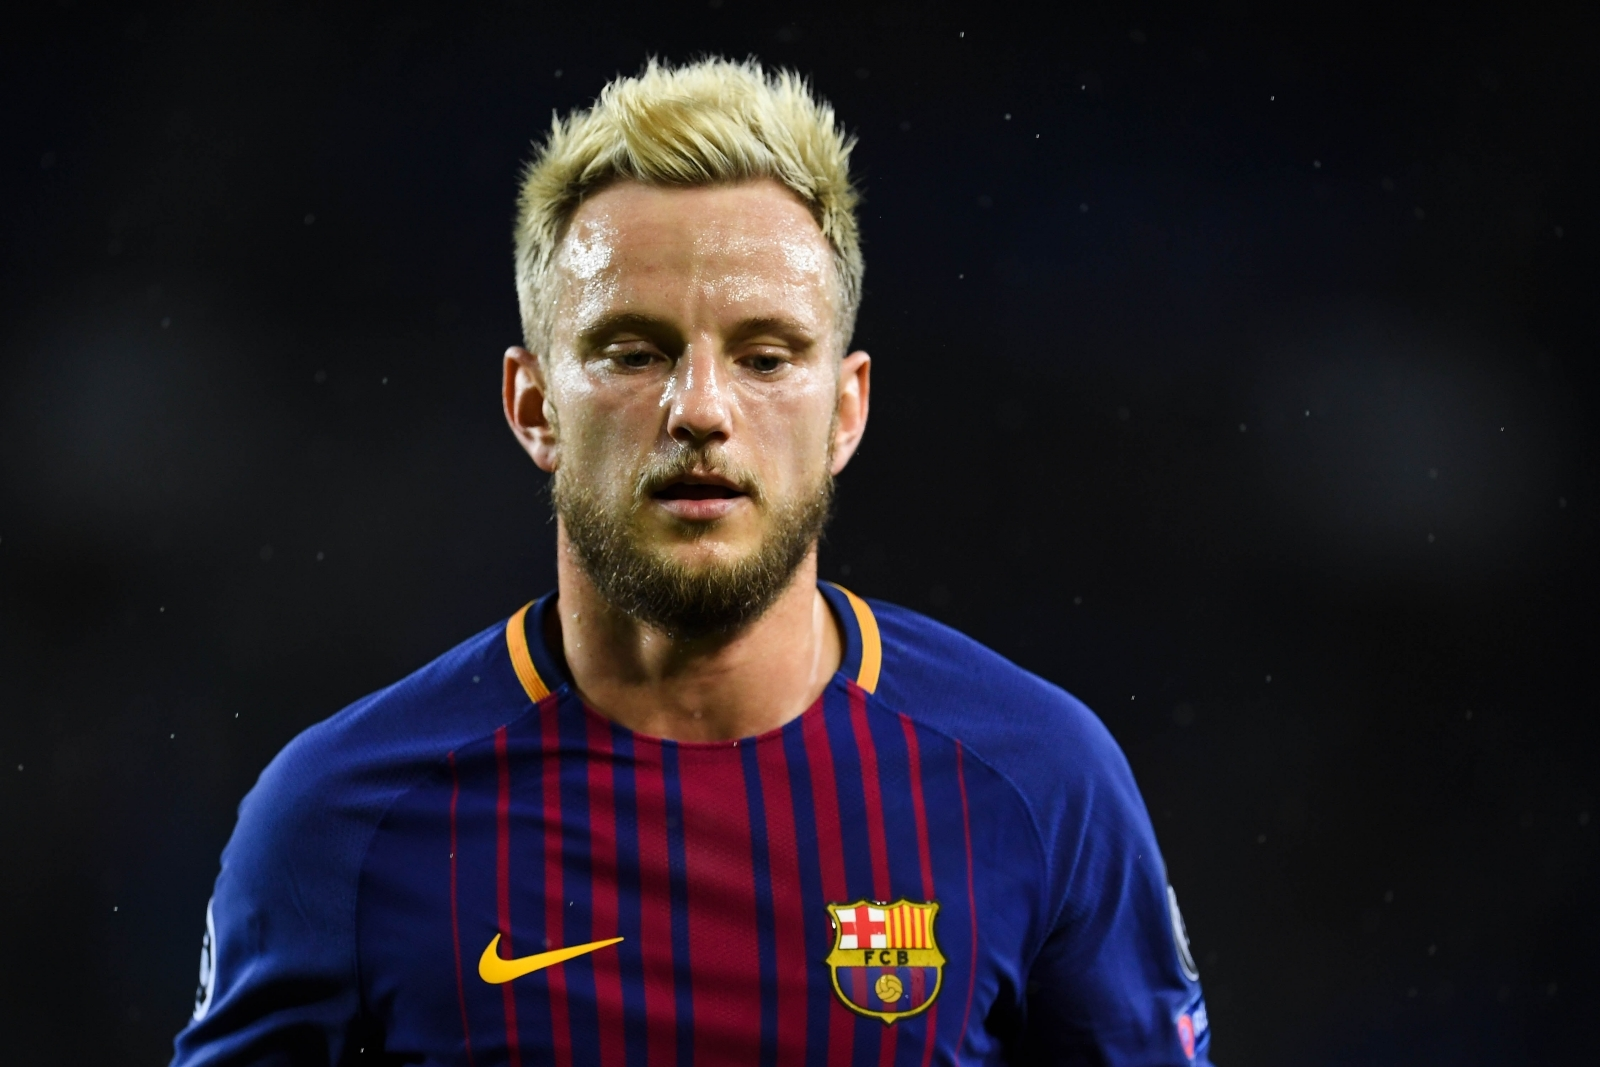 Barcelona Wallpaper Hd 2017 >> Ivan Rakitic believes Barcelona do not need January signings but would welcome Arsenal's Mesut Ozil